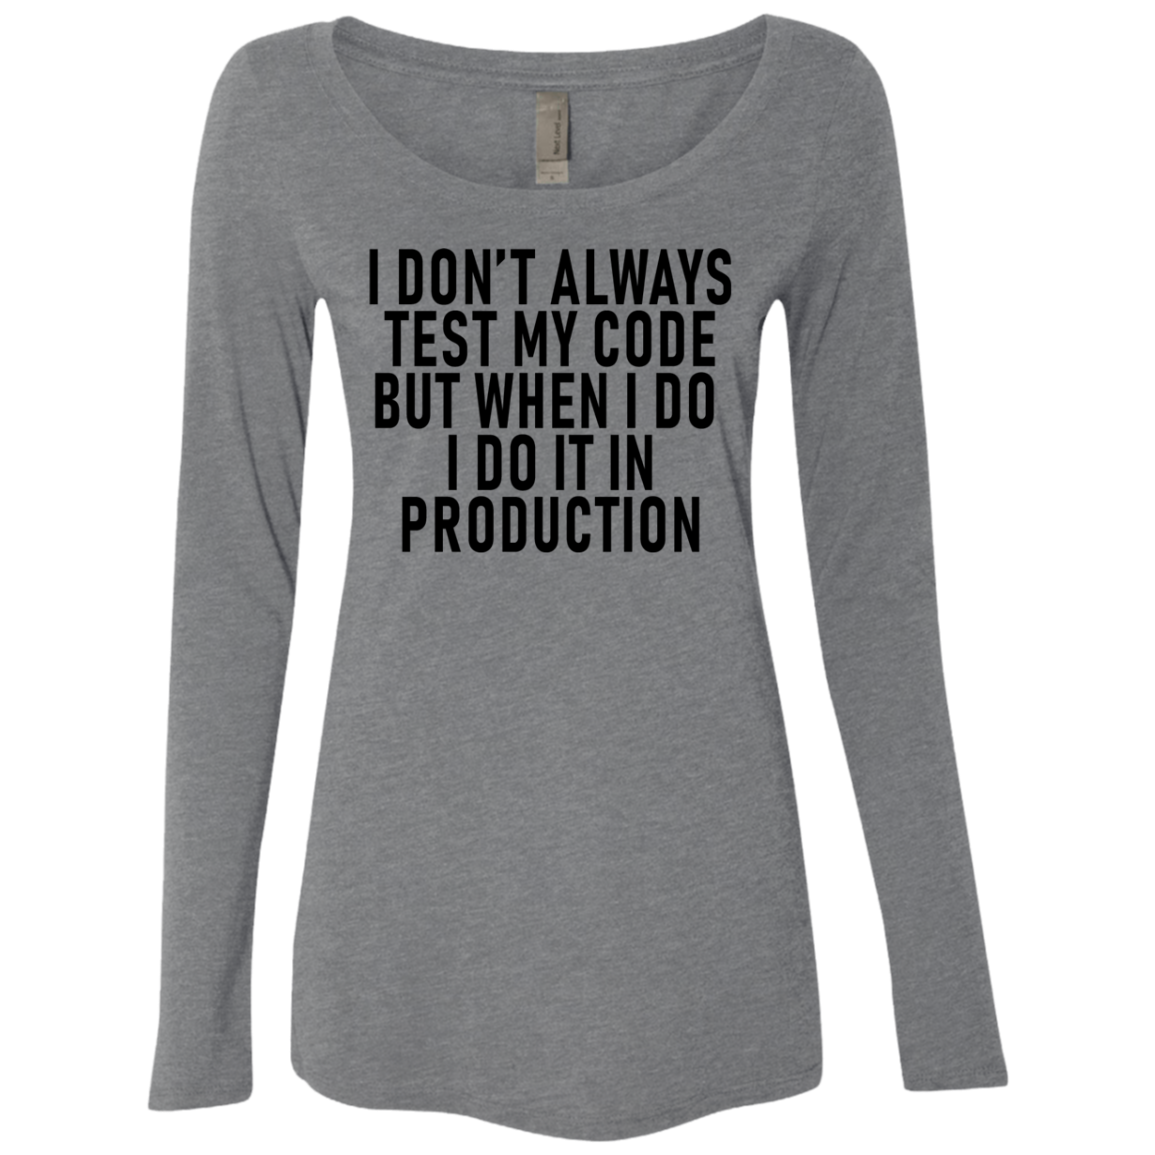 I Don't Always Test My Code But When I Do I Do It In Production Women's Long Sleeve Tee